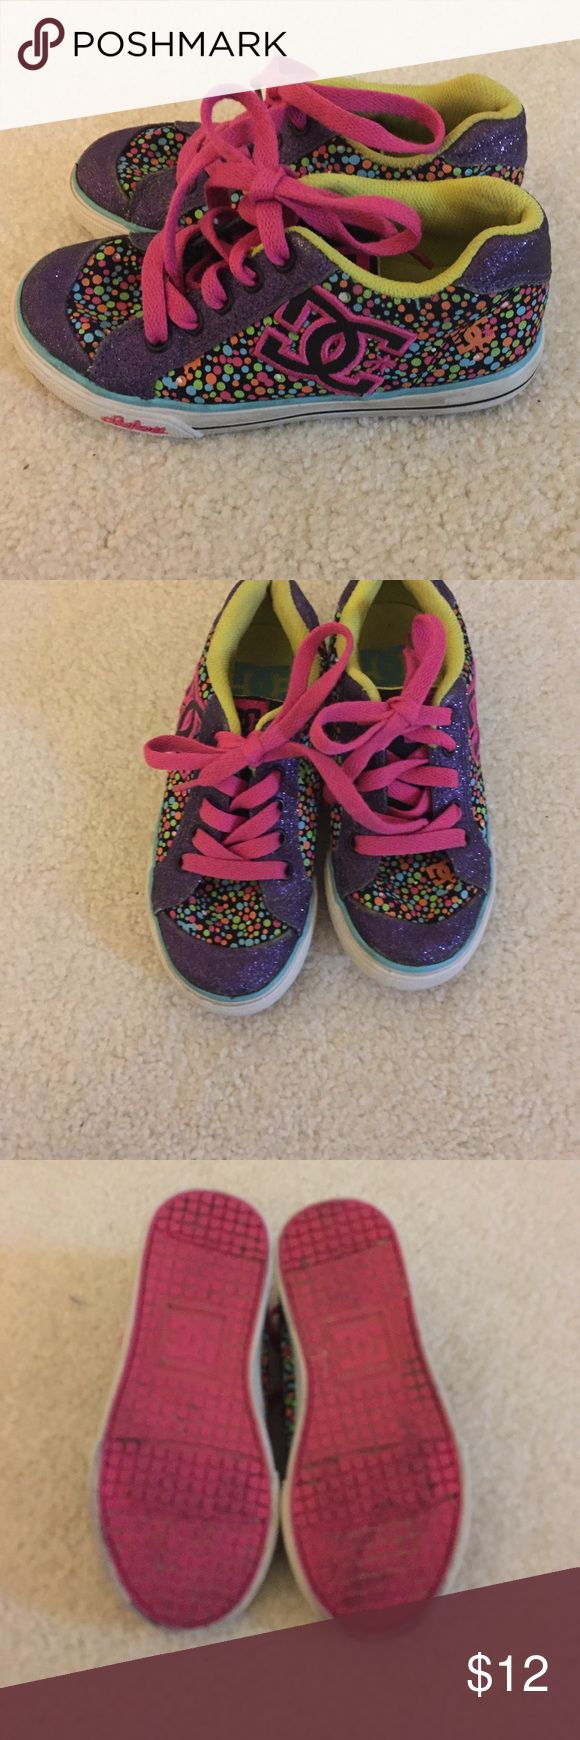 Girls DC Sneakers with Purple Glitter EUC Girls DC Sneakers with purple glitter detail. These were worn sole but outgrown quickly. DC Shoes Sneakers